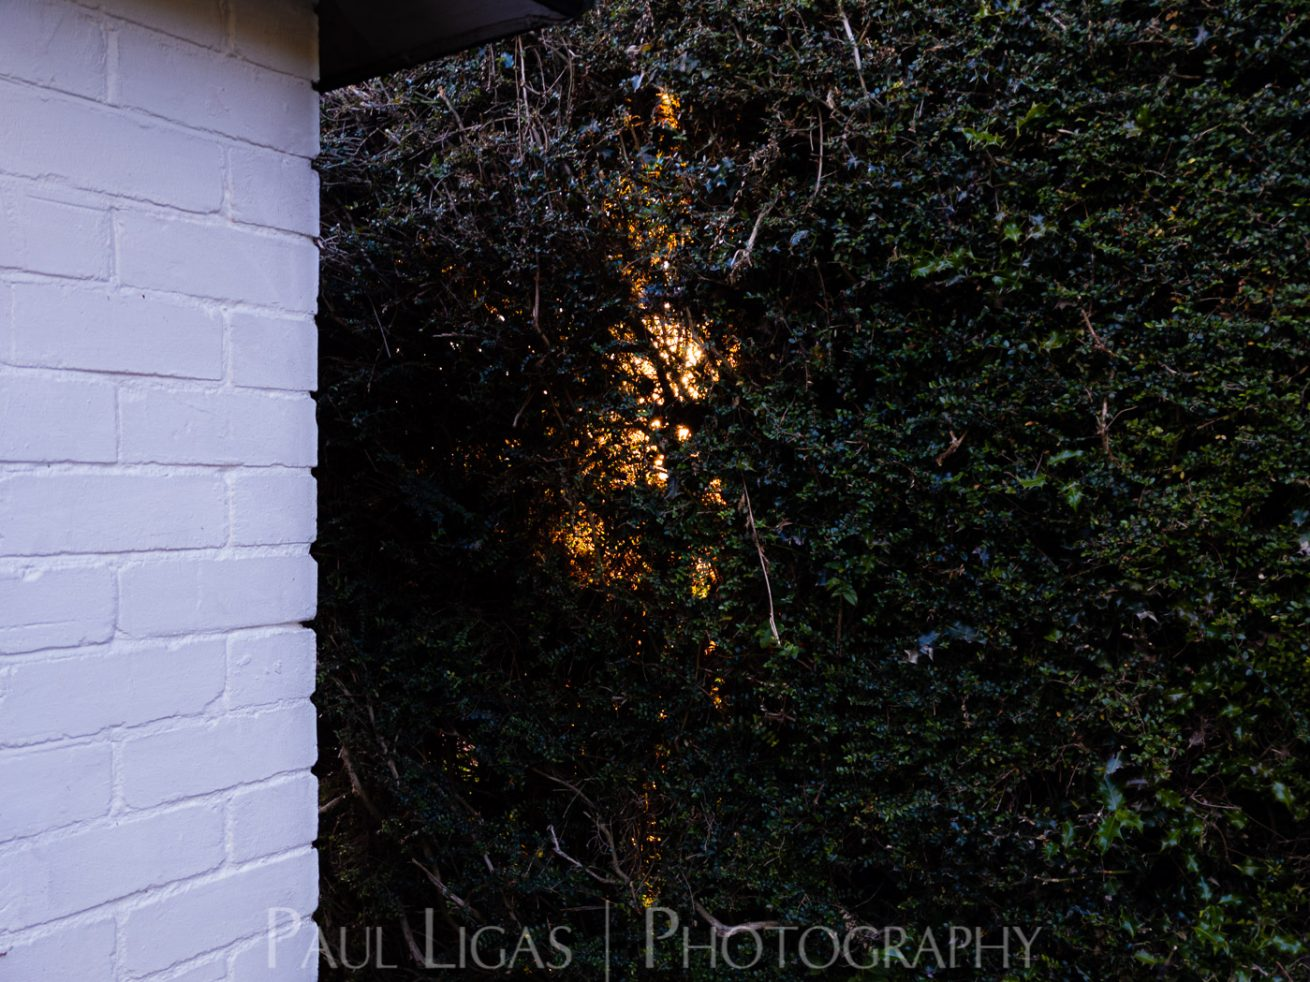 photos from inside a lockdown part 13 paul ligas photography hereford ledbury-205741